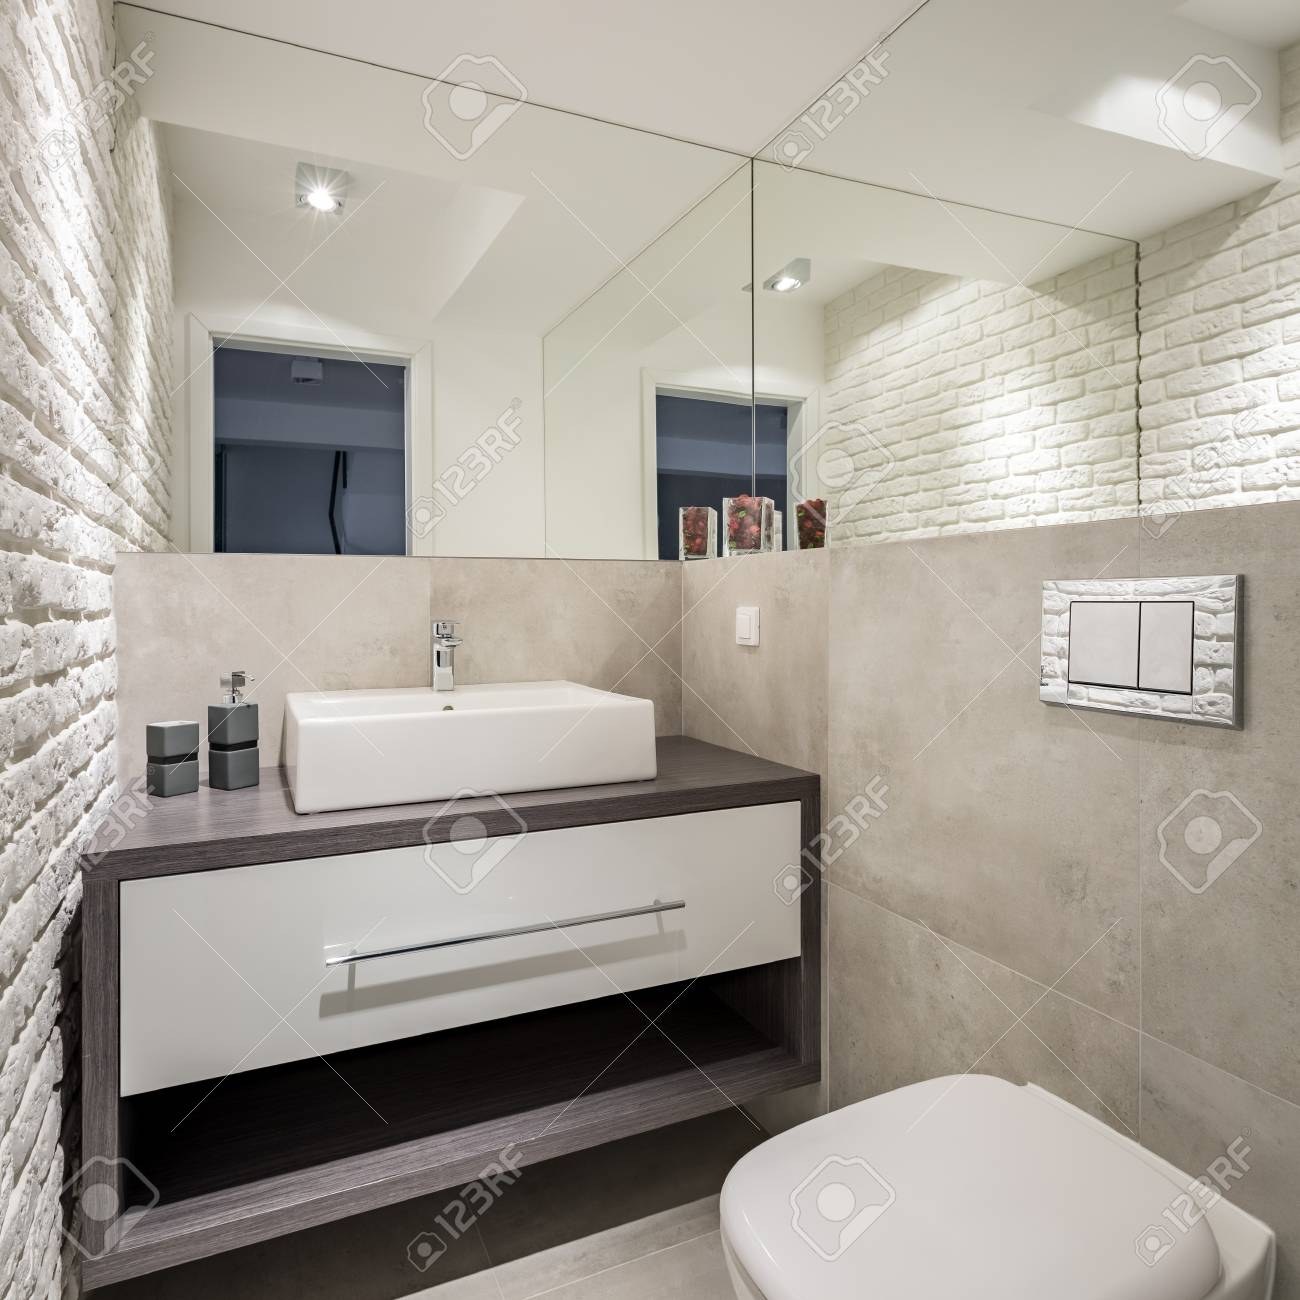 Modern Bathroom With Brick Wall Toilet And Basin Cabinet Stock